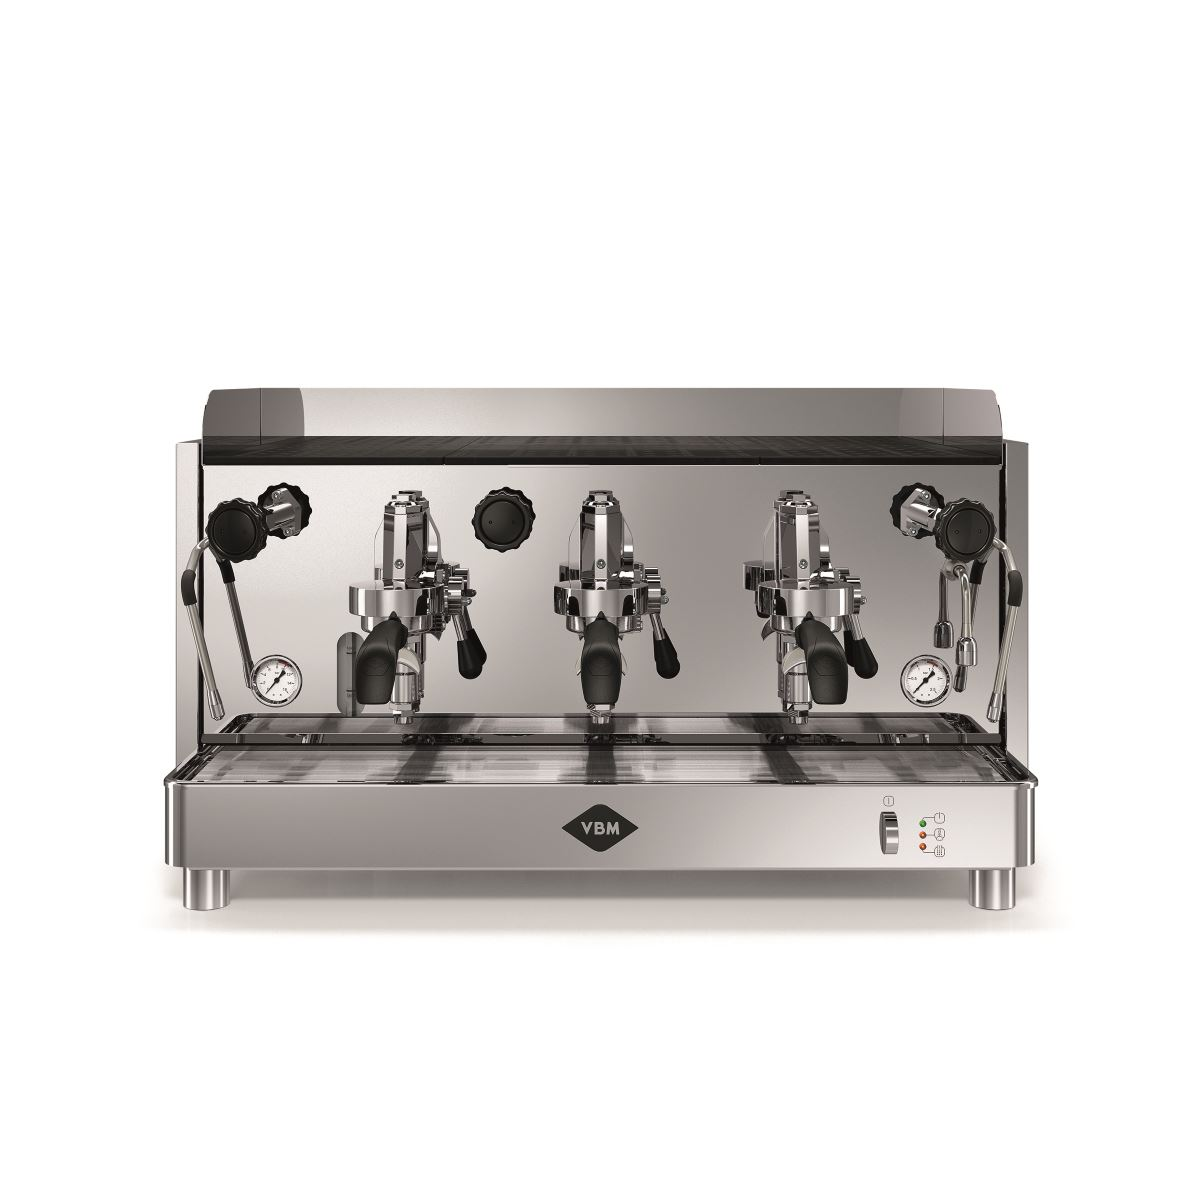 Professional coffee machine Vibiemme Replica HX Manuale, 3 groups